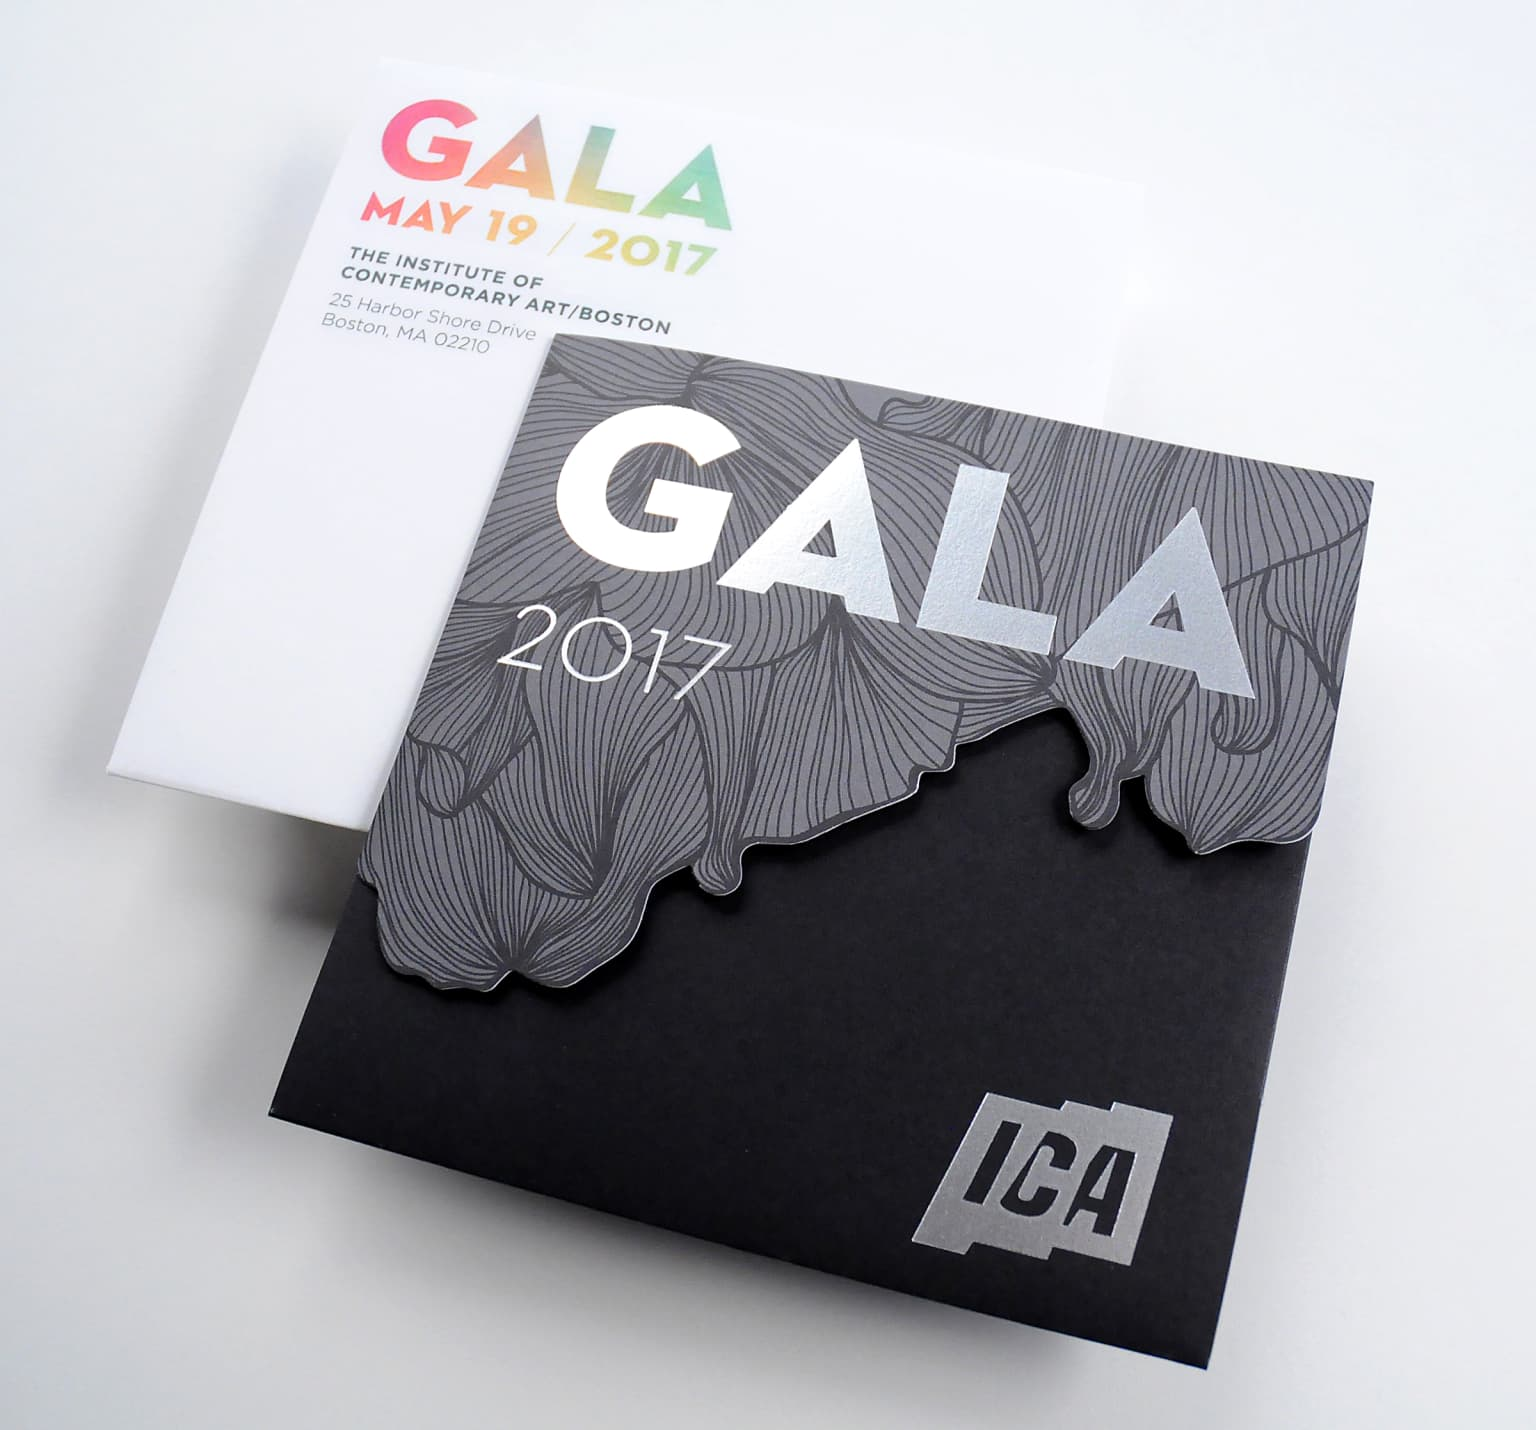 ICA/BOSTON 2017 GALA